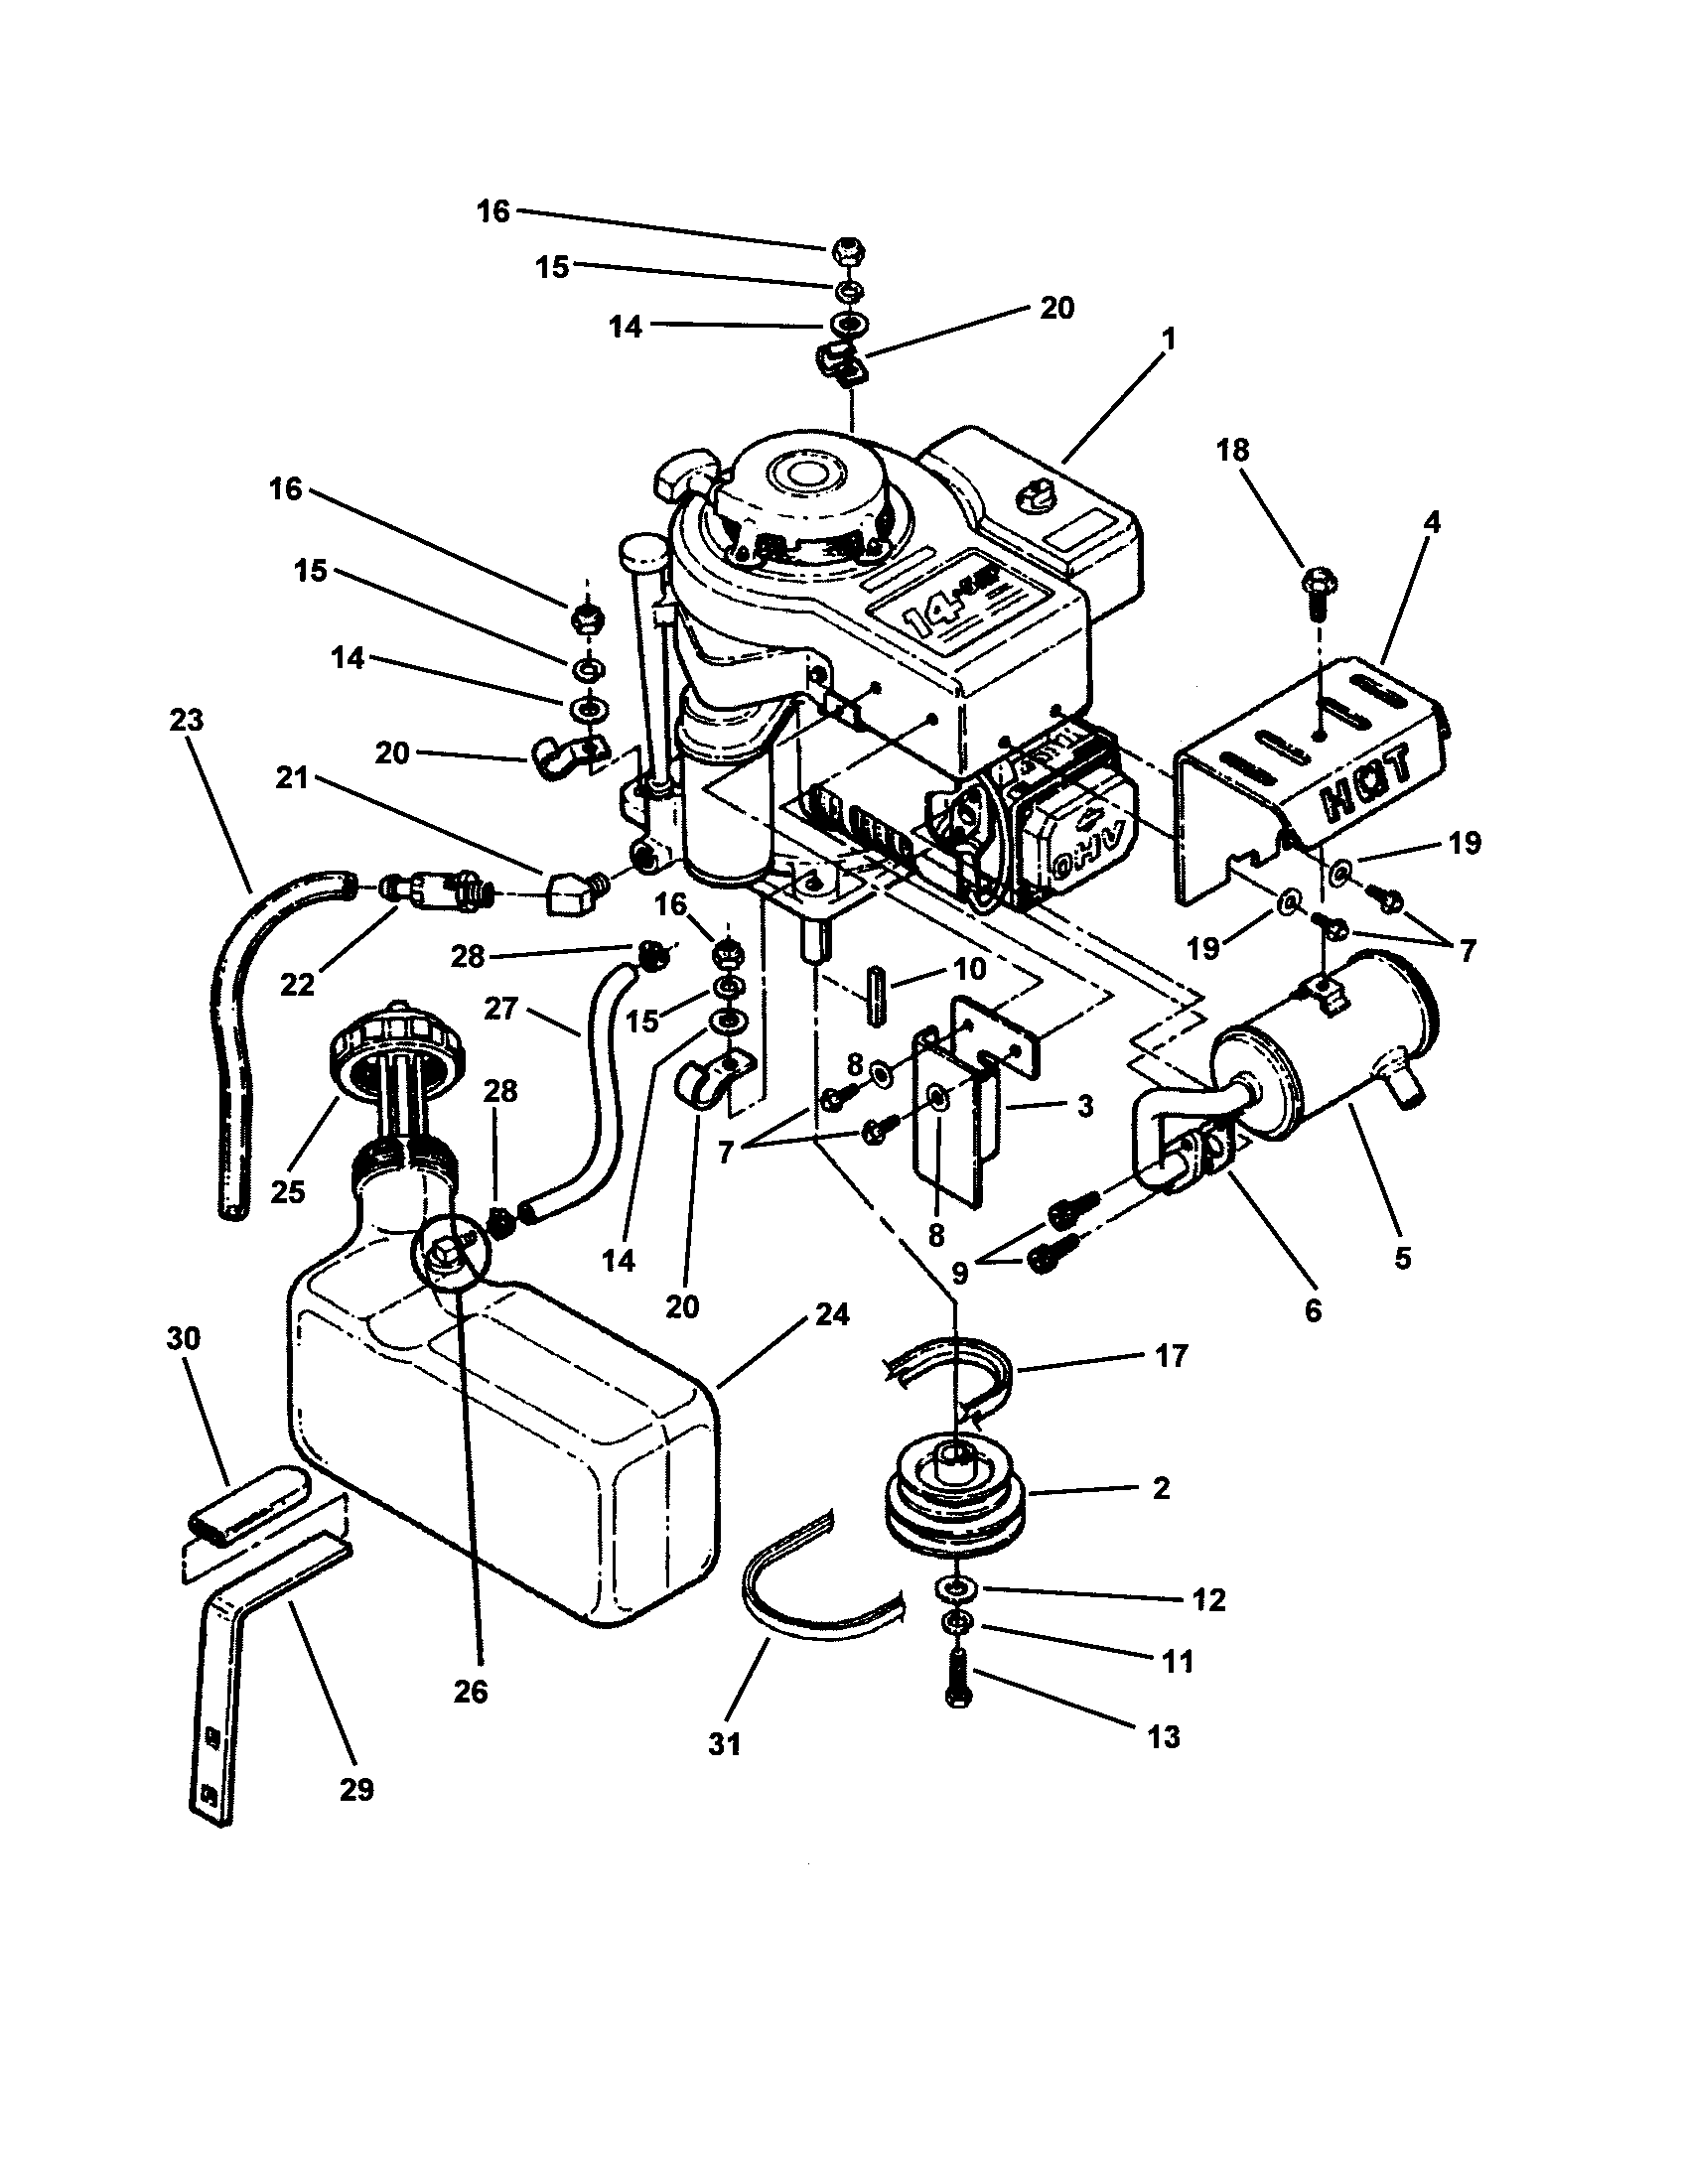 Wiring Diagram  33 Snapper Riding Mower Parts Diagram